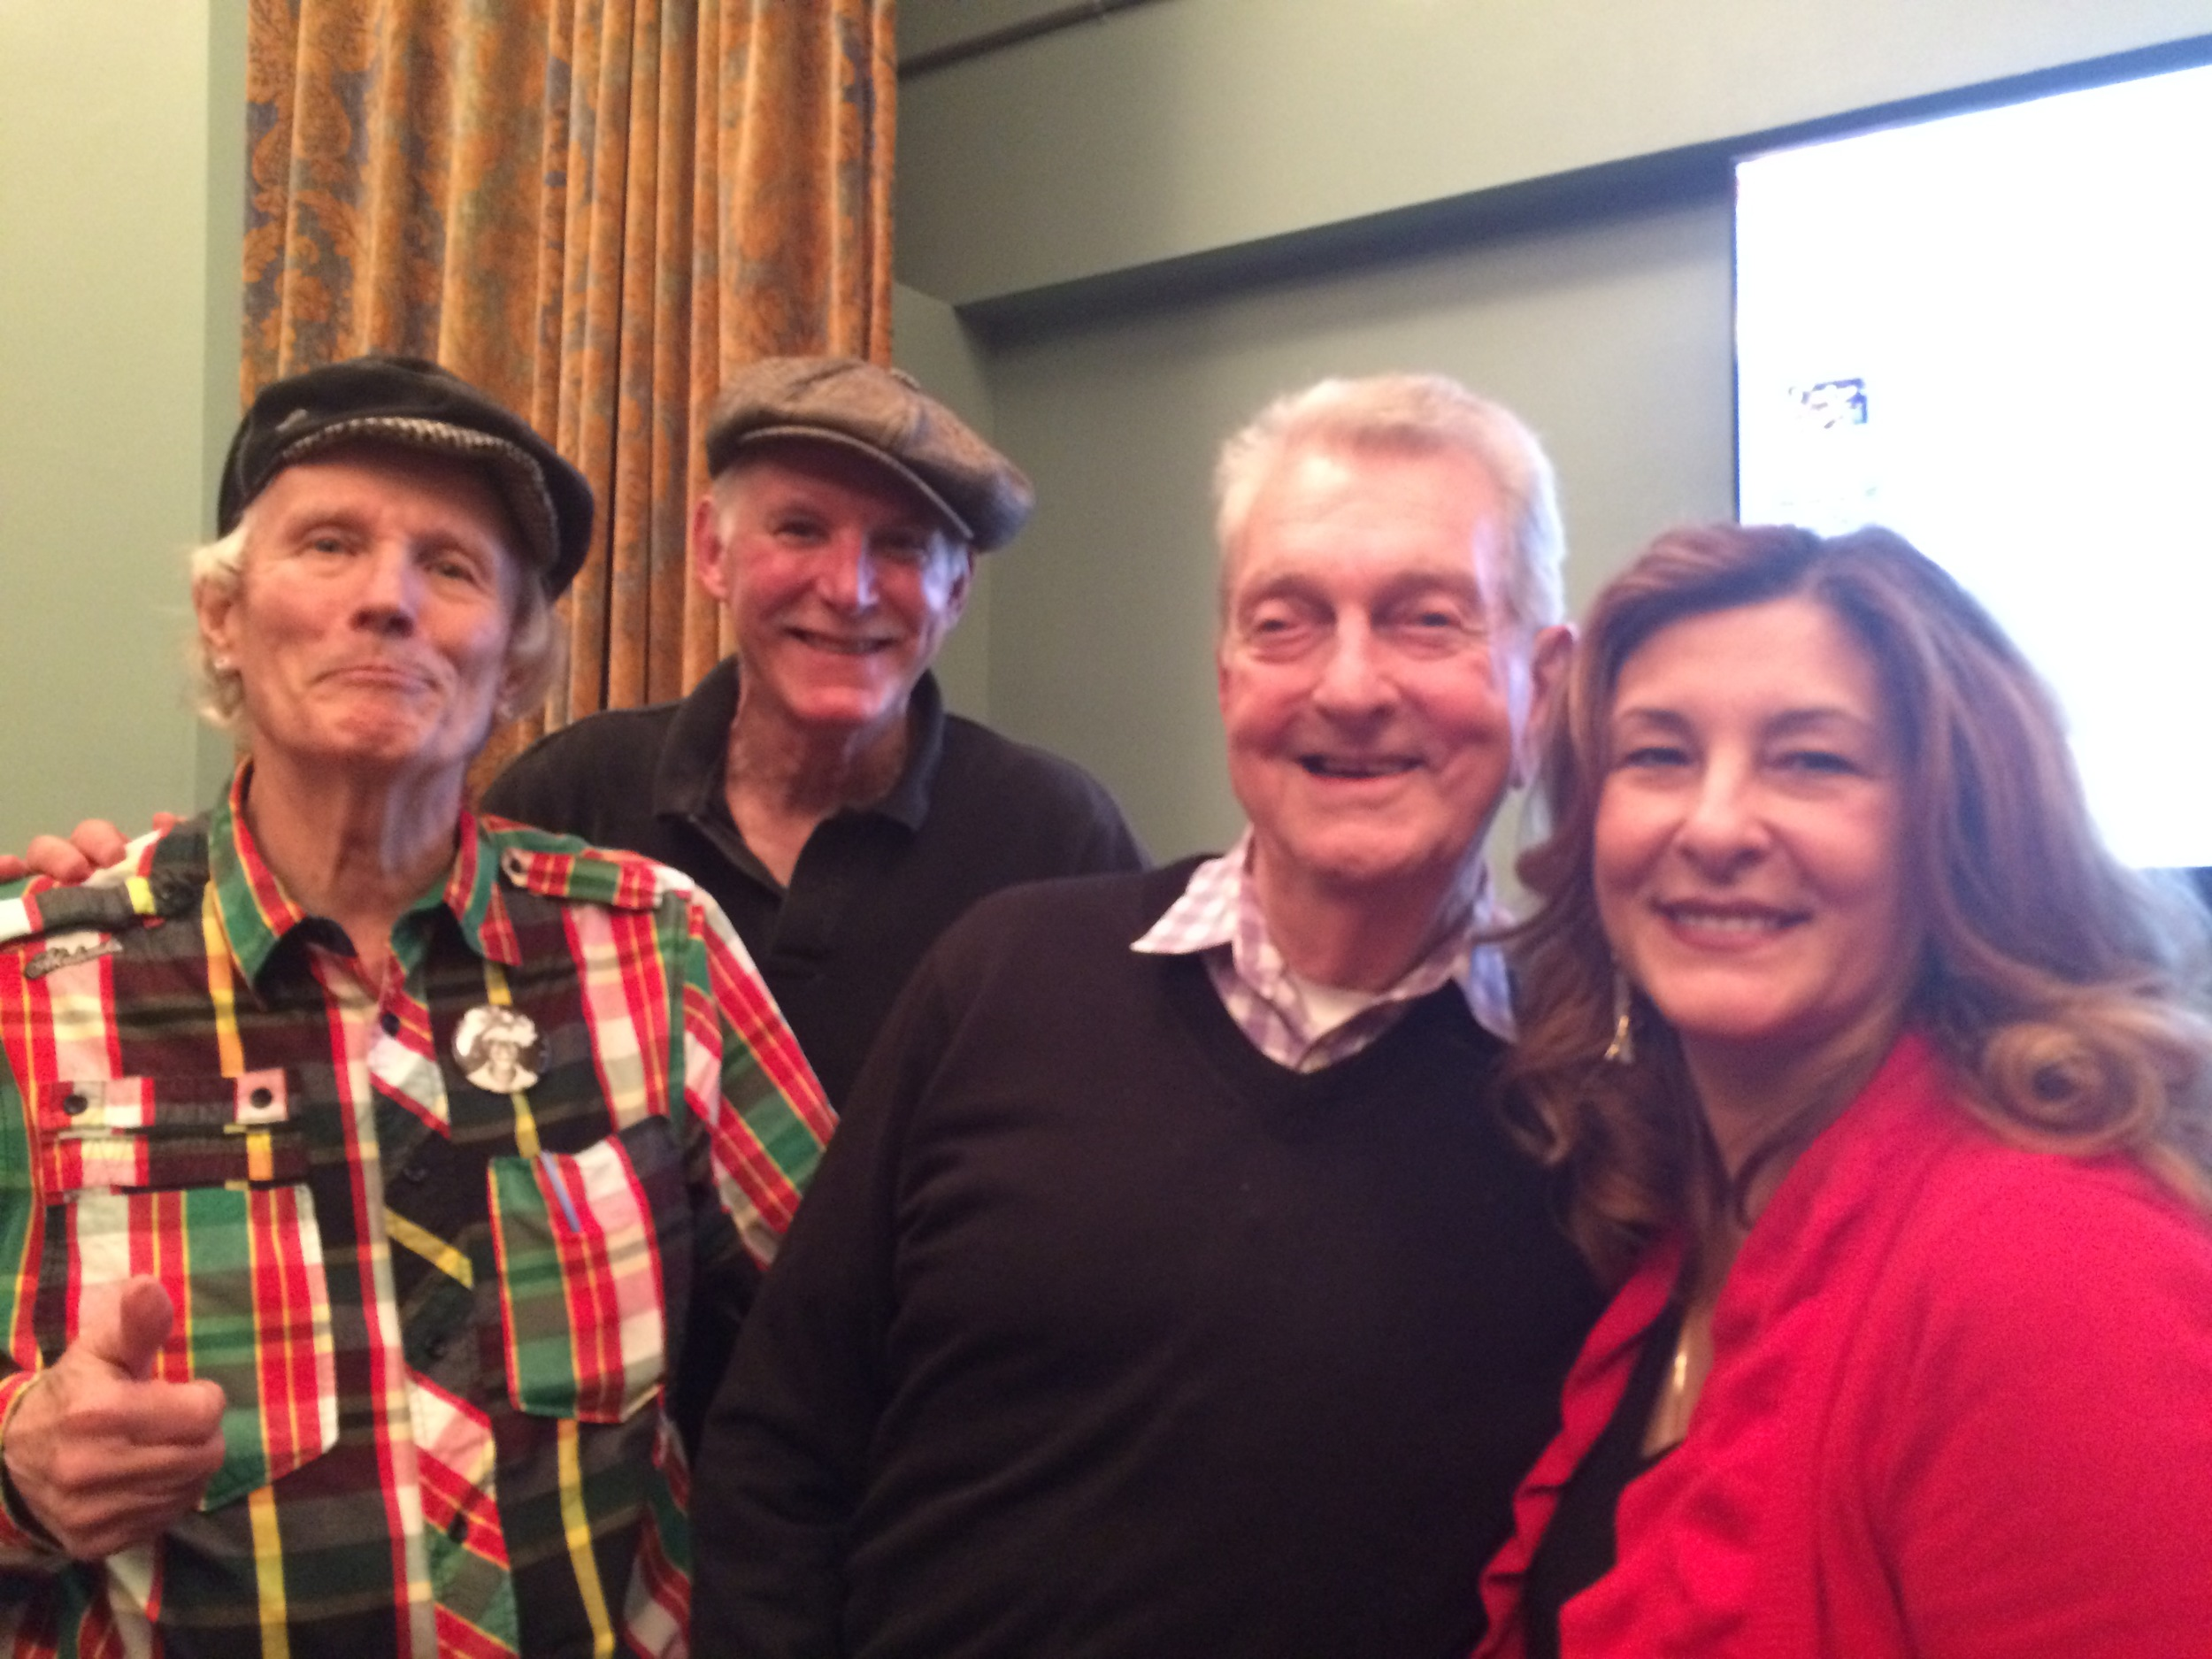 From left,Randy Wicker, Julius' historian Tom Bernardin, Dick Leitsch and Julius' owner Helen Buford,Greenwich Village Society for Historic Preservation panel discussion at Jefferson Market Library, April 12, 2016 - 50 years (minus a few days!) after the Sip In.